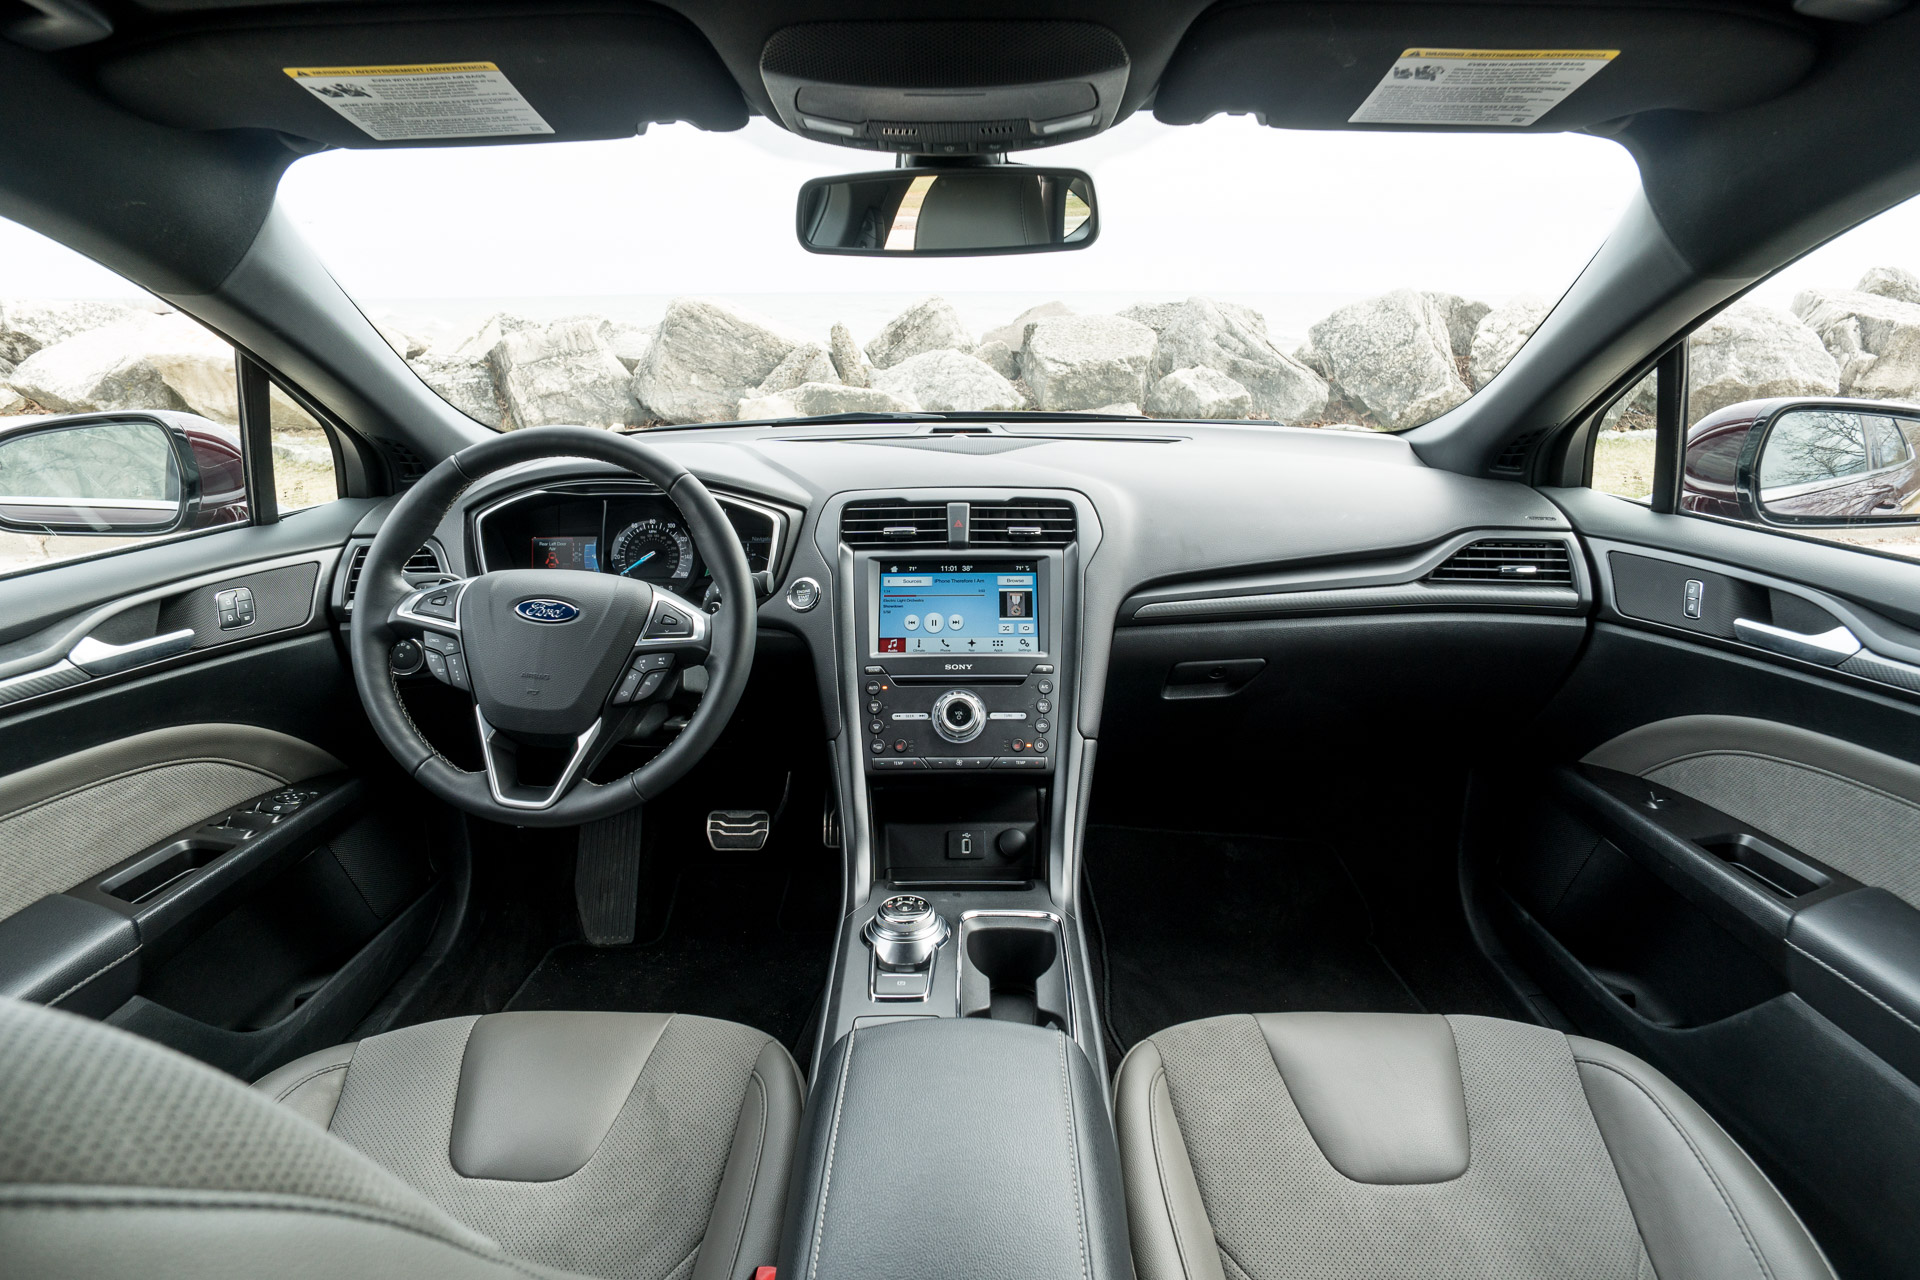 2017 ford fusion sport review daily driver with a dash of dynamite 95 octane. Black Bedroom Furniture Sets. Home Design Ideas